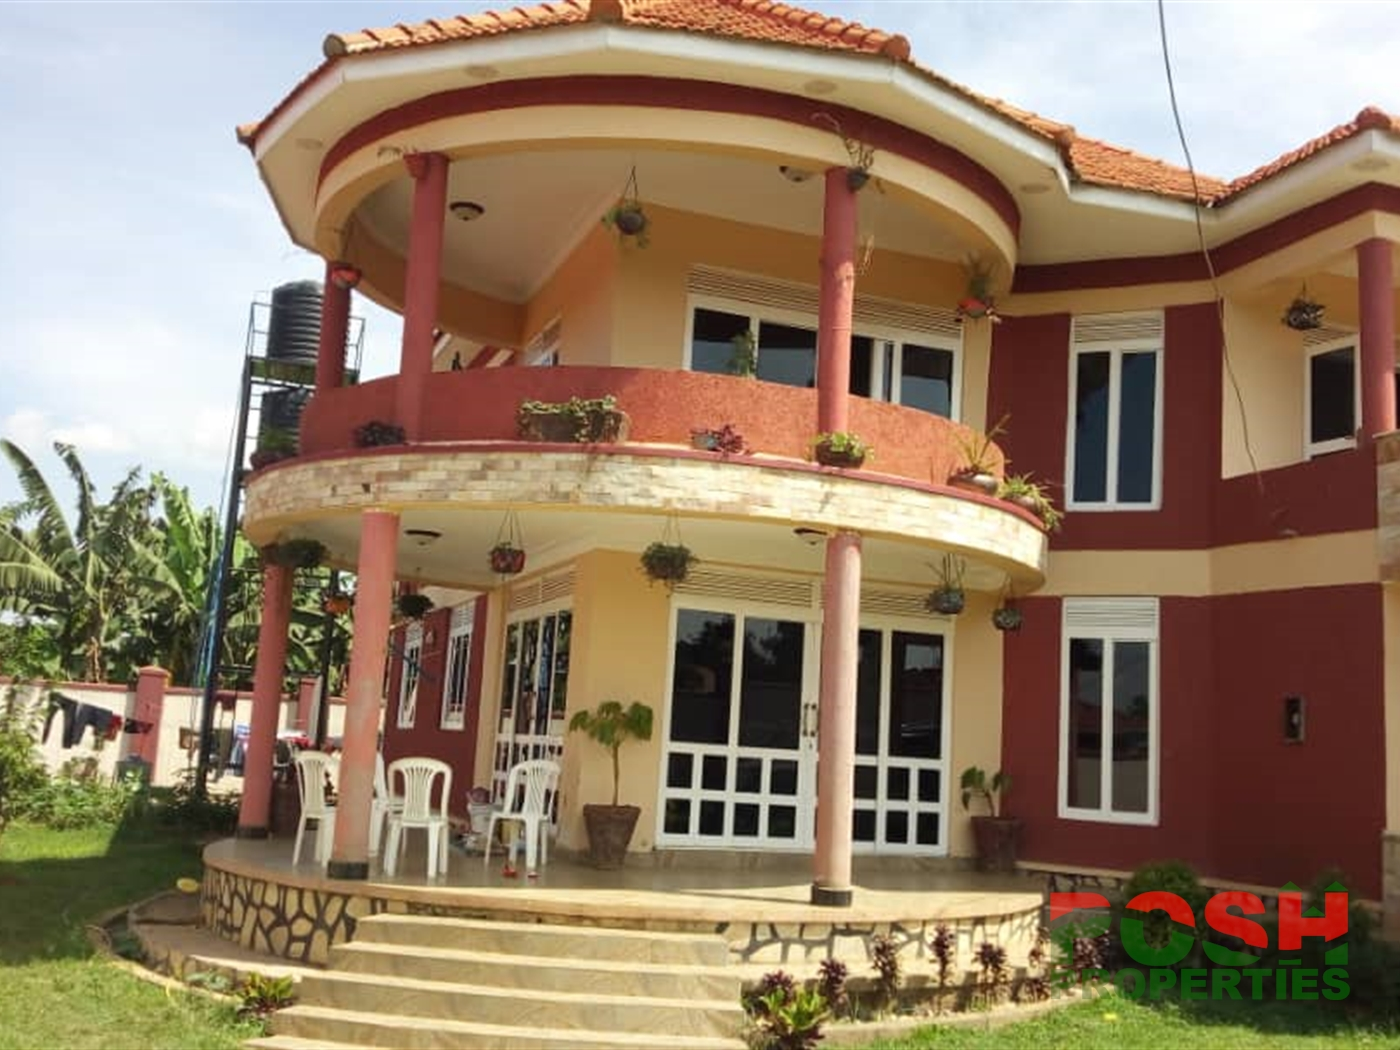 Mansion for sale in Namugongo Kampala